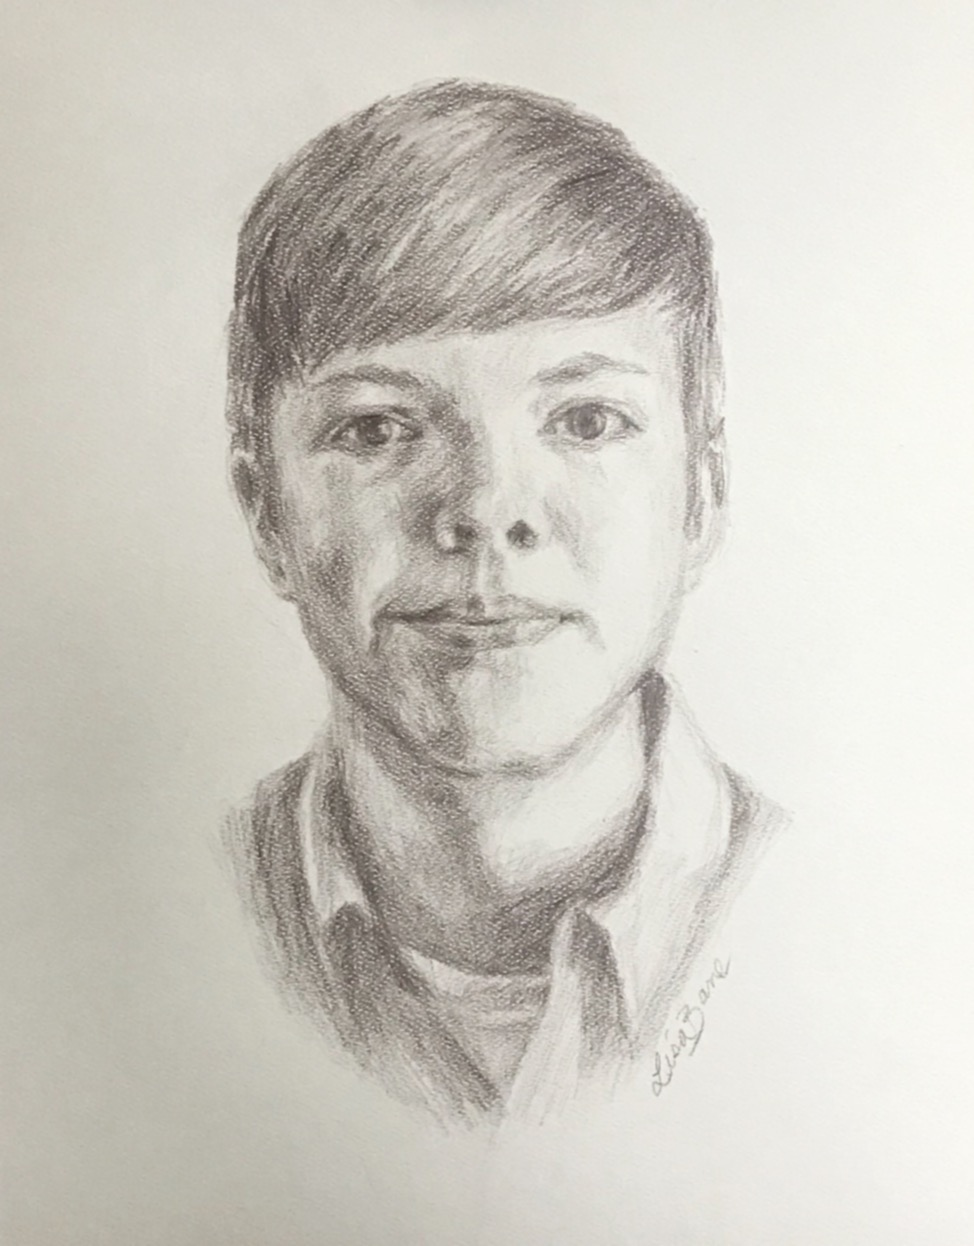 Charcoal pencil portrait